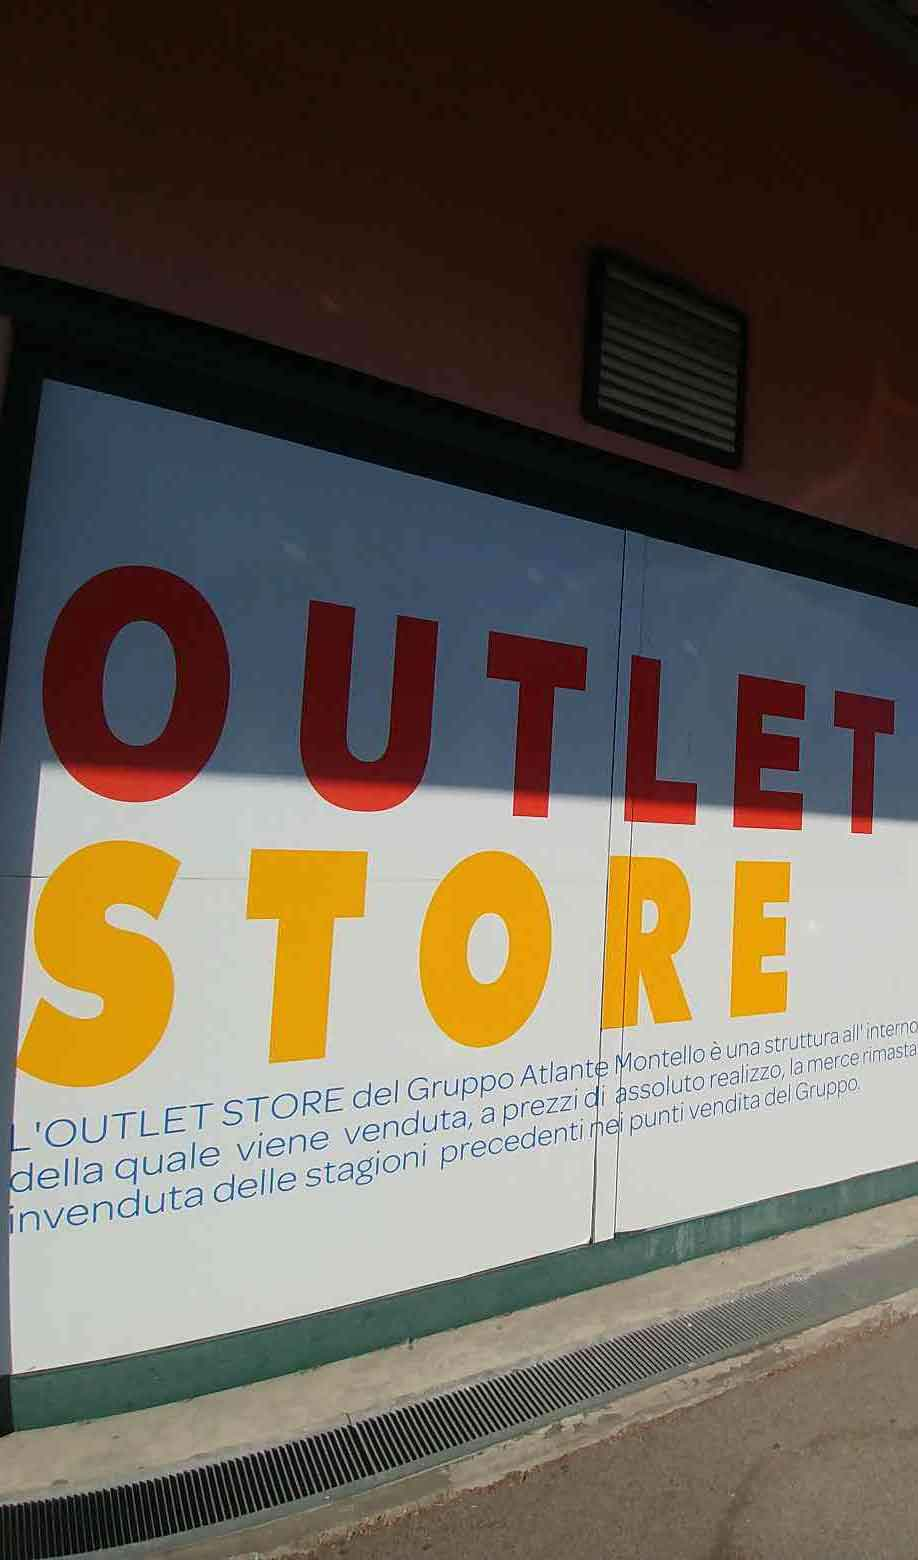 Outlet store chieri